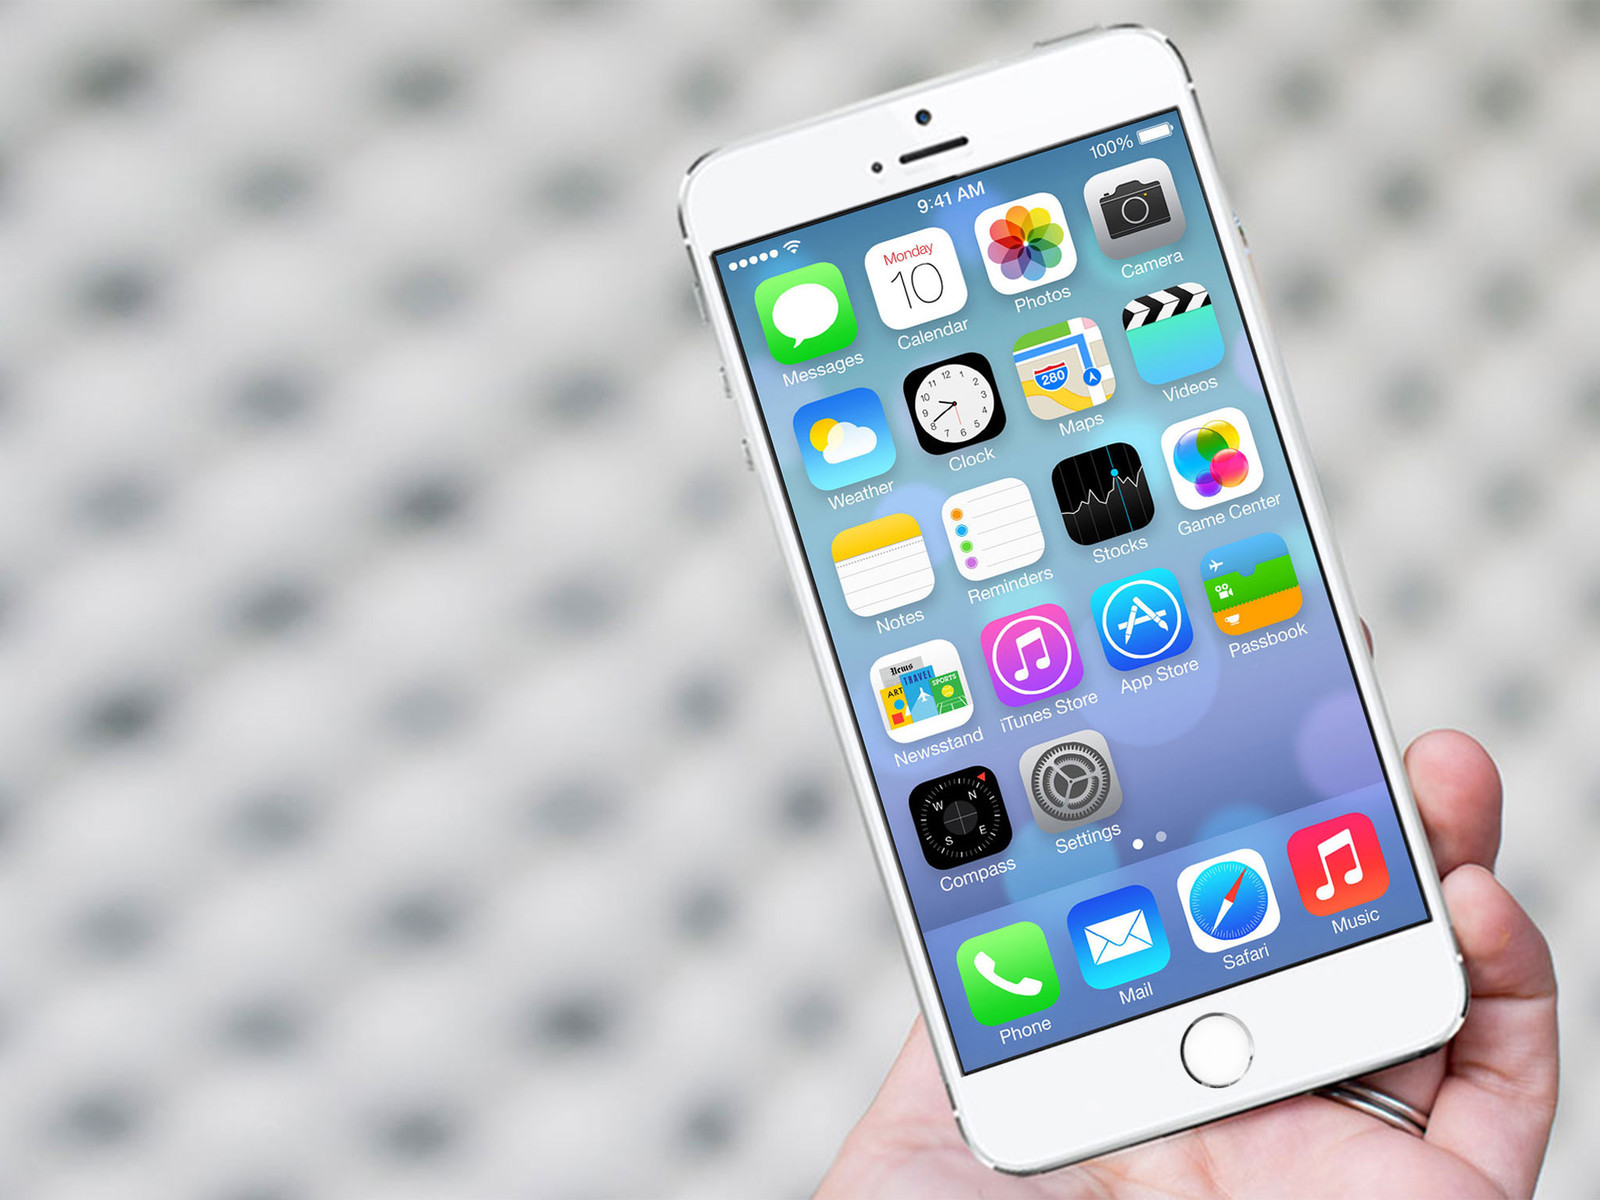 Apple again said to be holding iPhone 6 event September 9